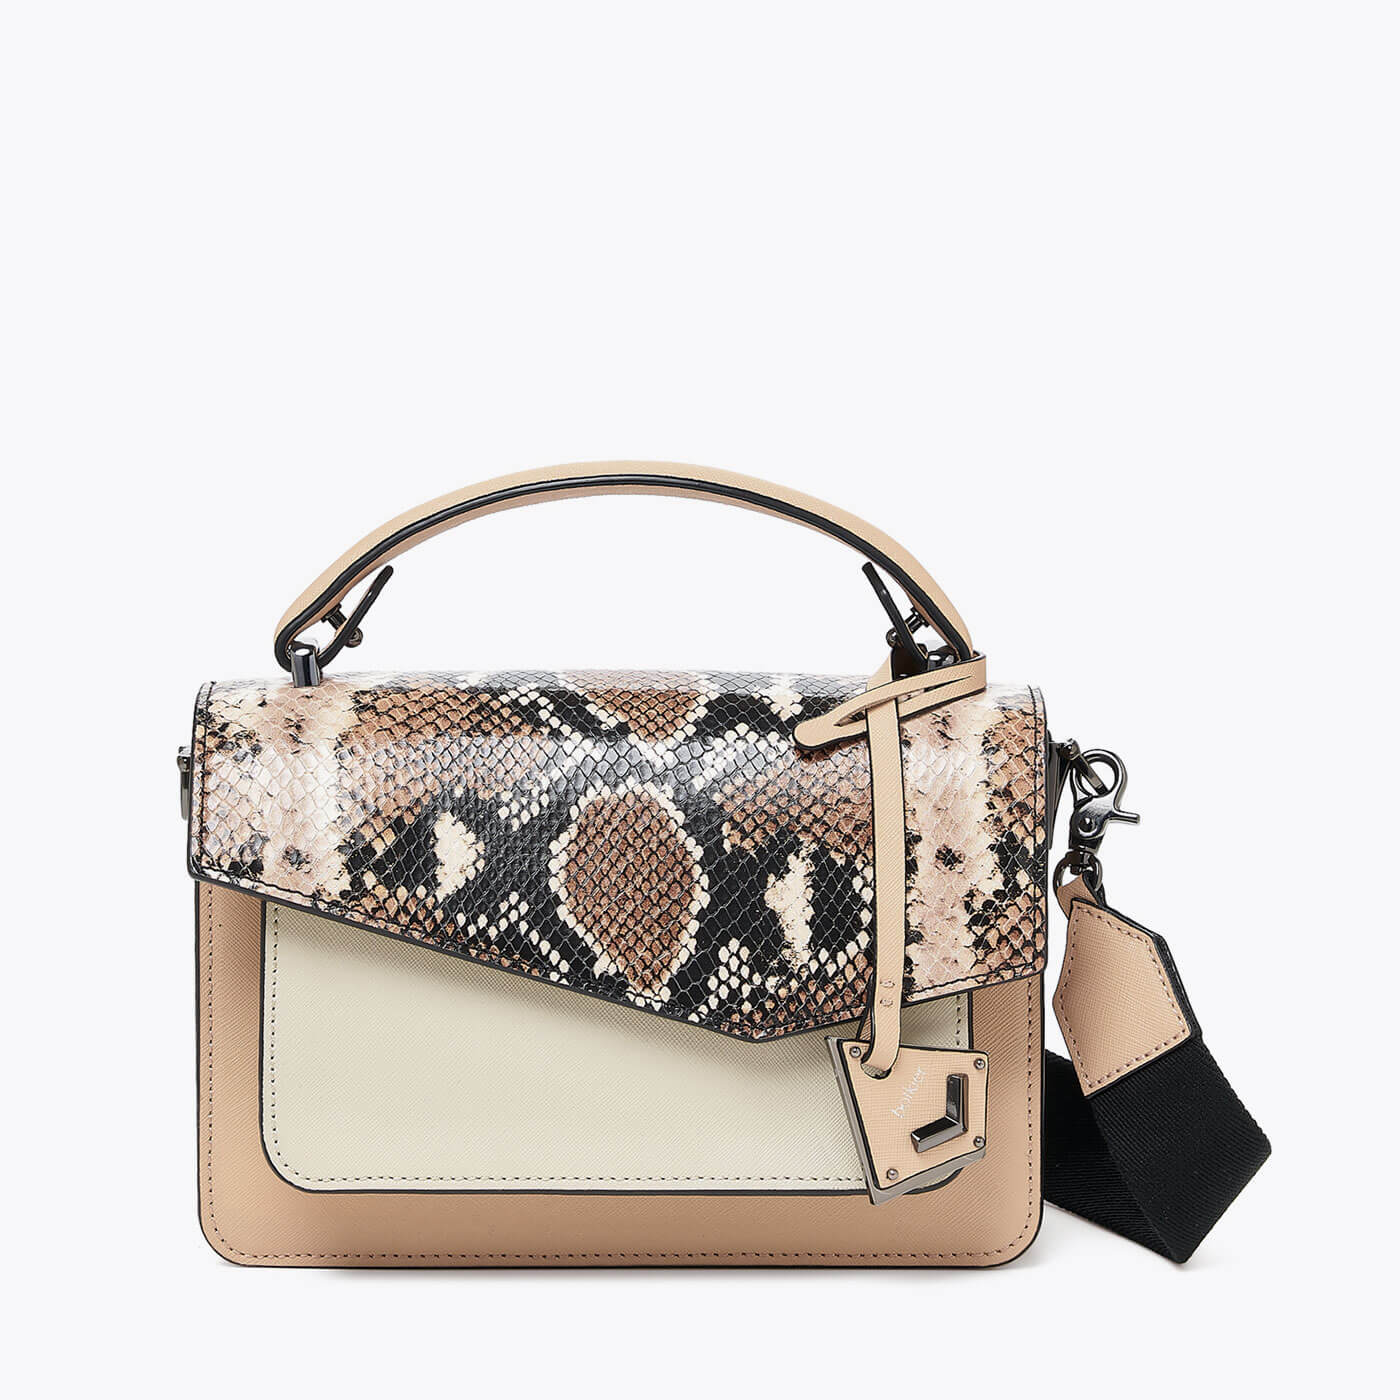 botkier cobble hill structured asymetric flap crossbody in beige and ivory with brown snake print flap